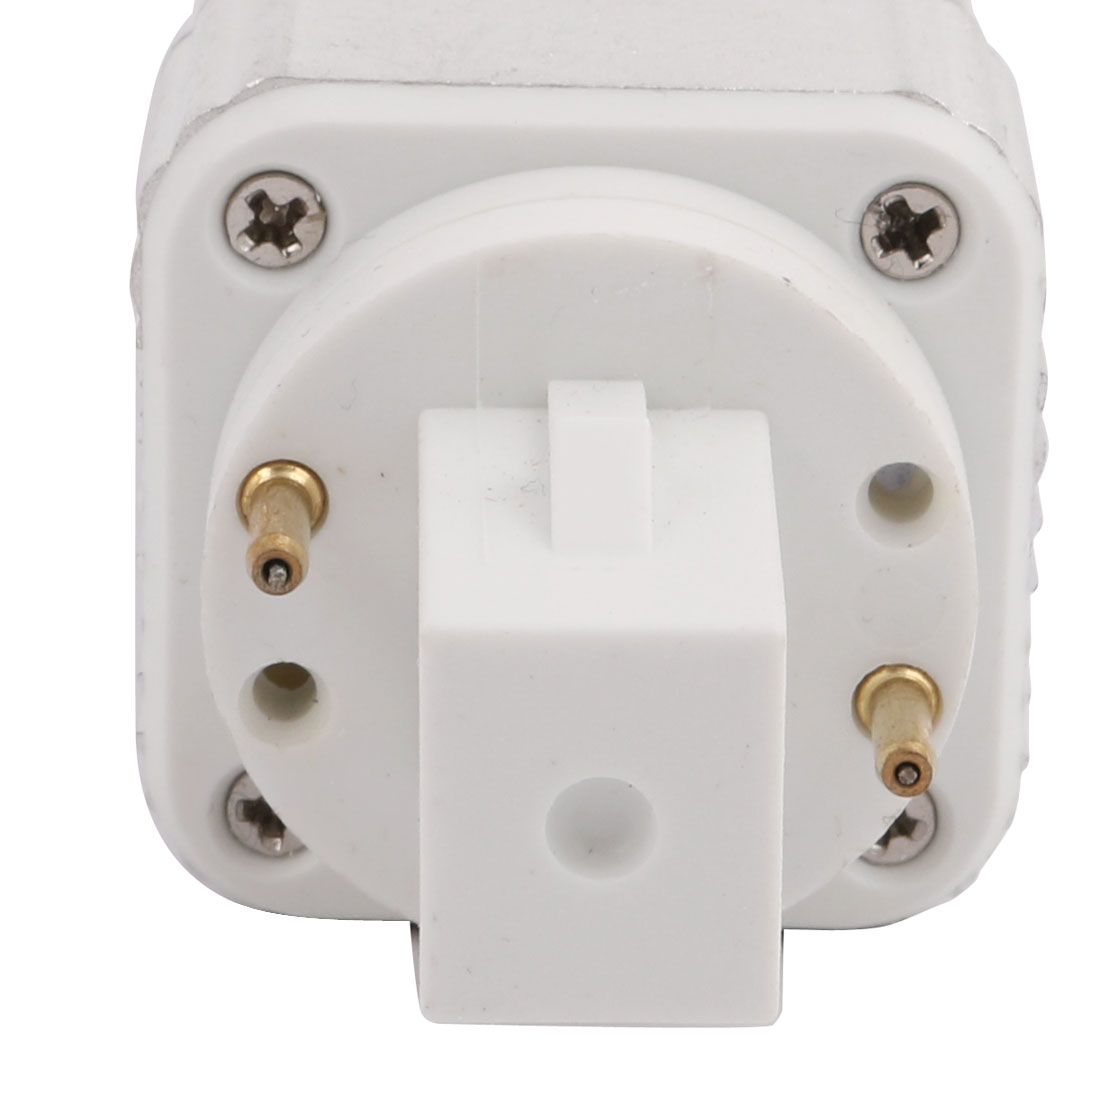 AC110V 10W G24 3000K Dimmable 56LED Horizontal 2P Connector Light Tube Cream - image 3 of 4